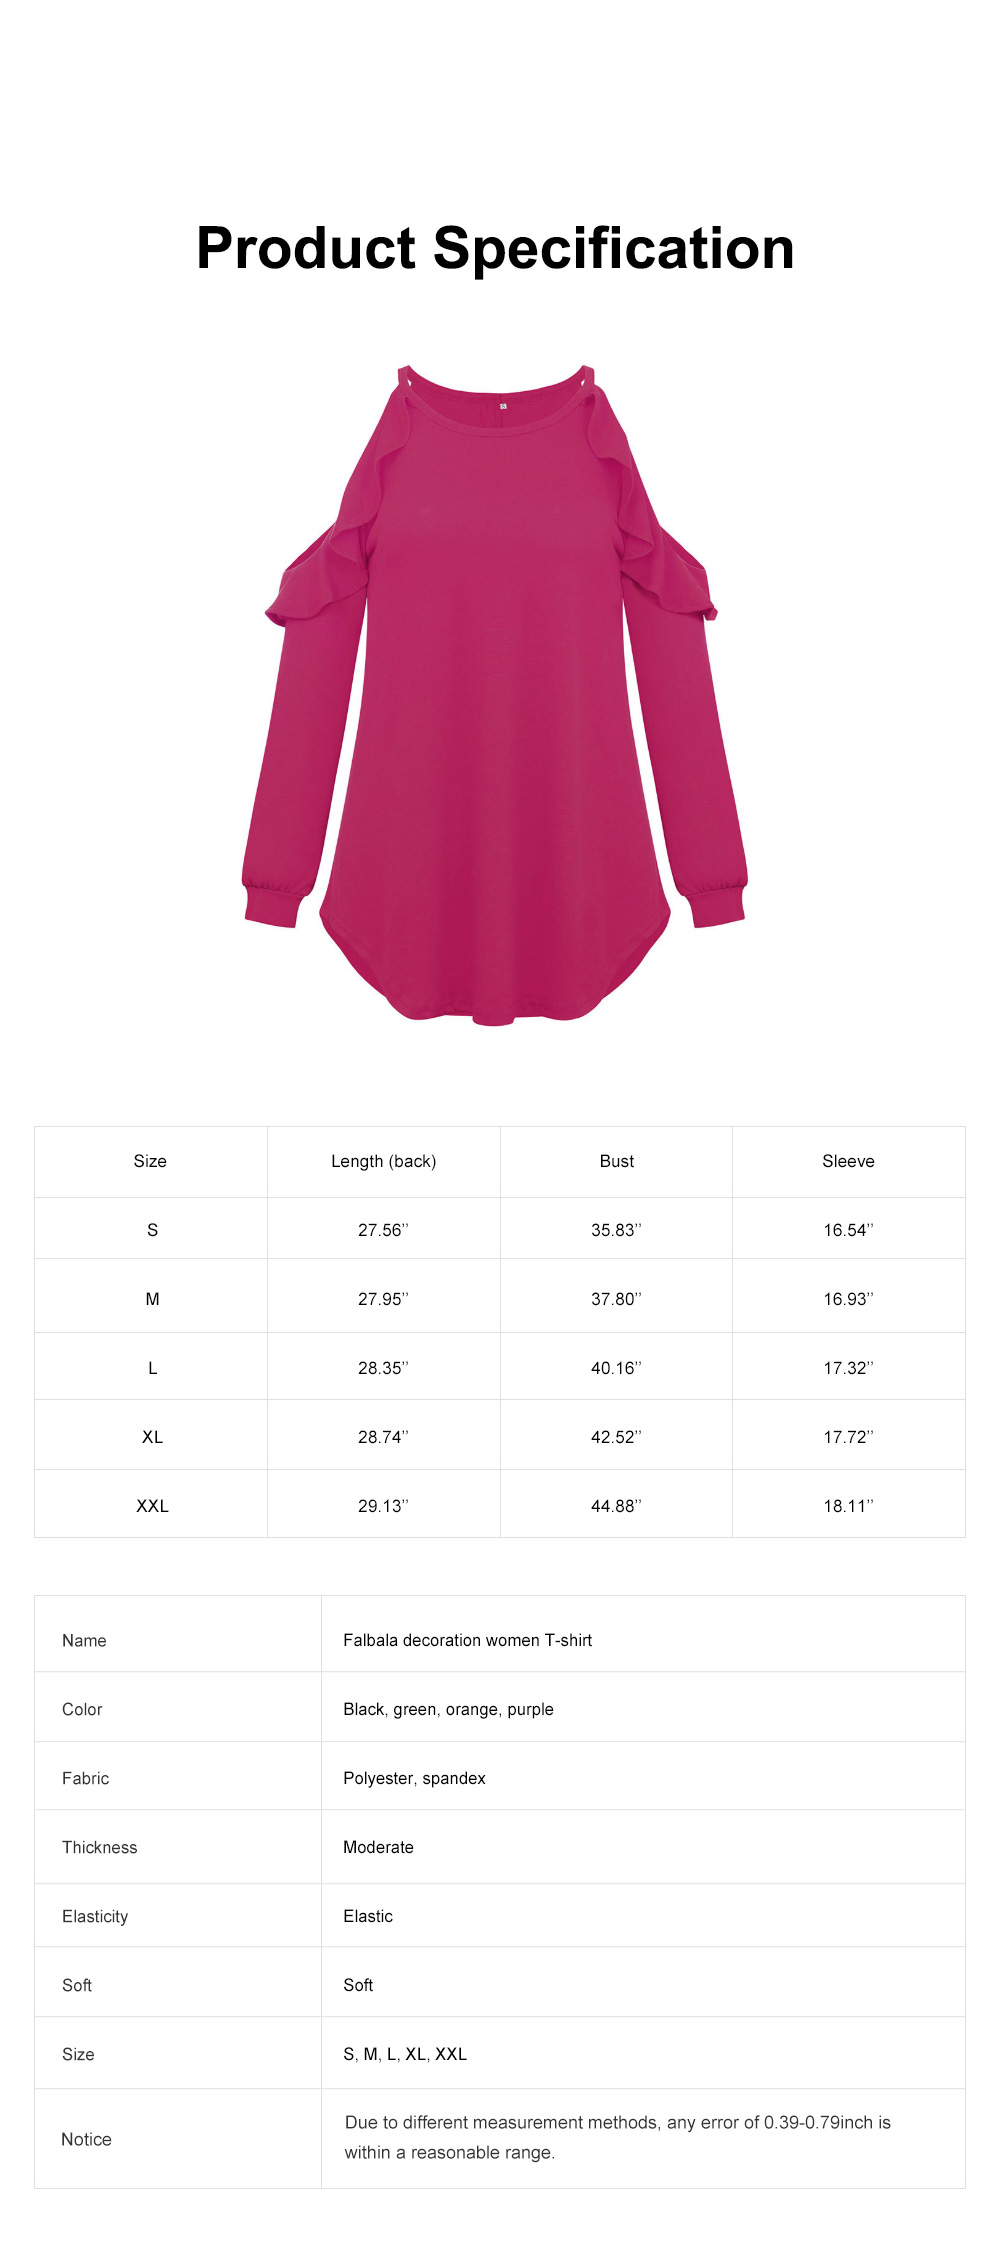 Stylish Falbala Decoration Off-the-Shoulder Women Tops, Soft Breathable Long Sleeves T-Shirt for Ladies 6